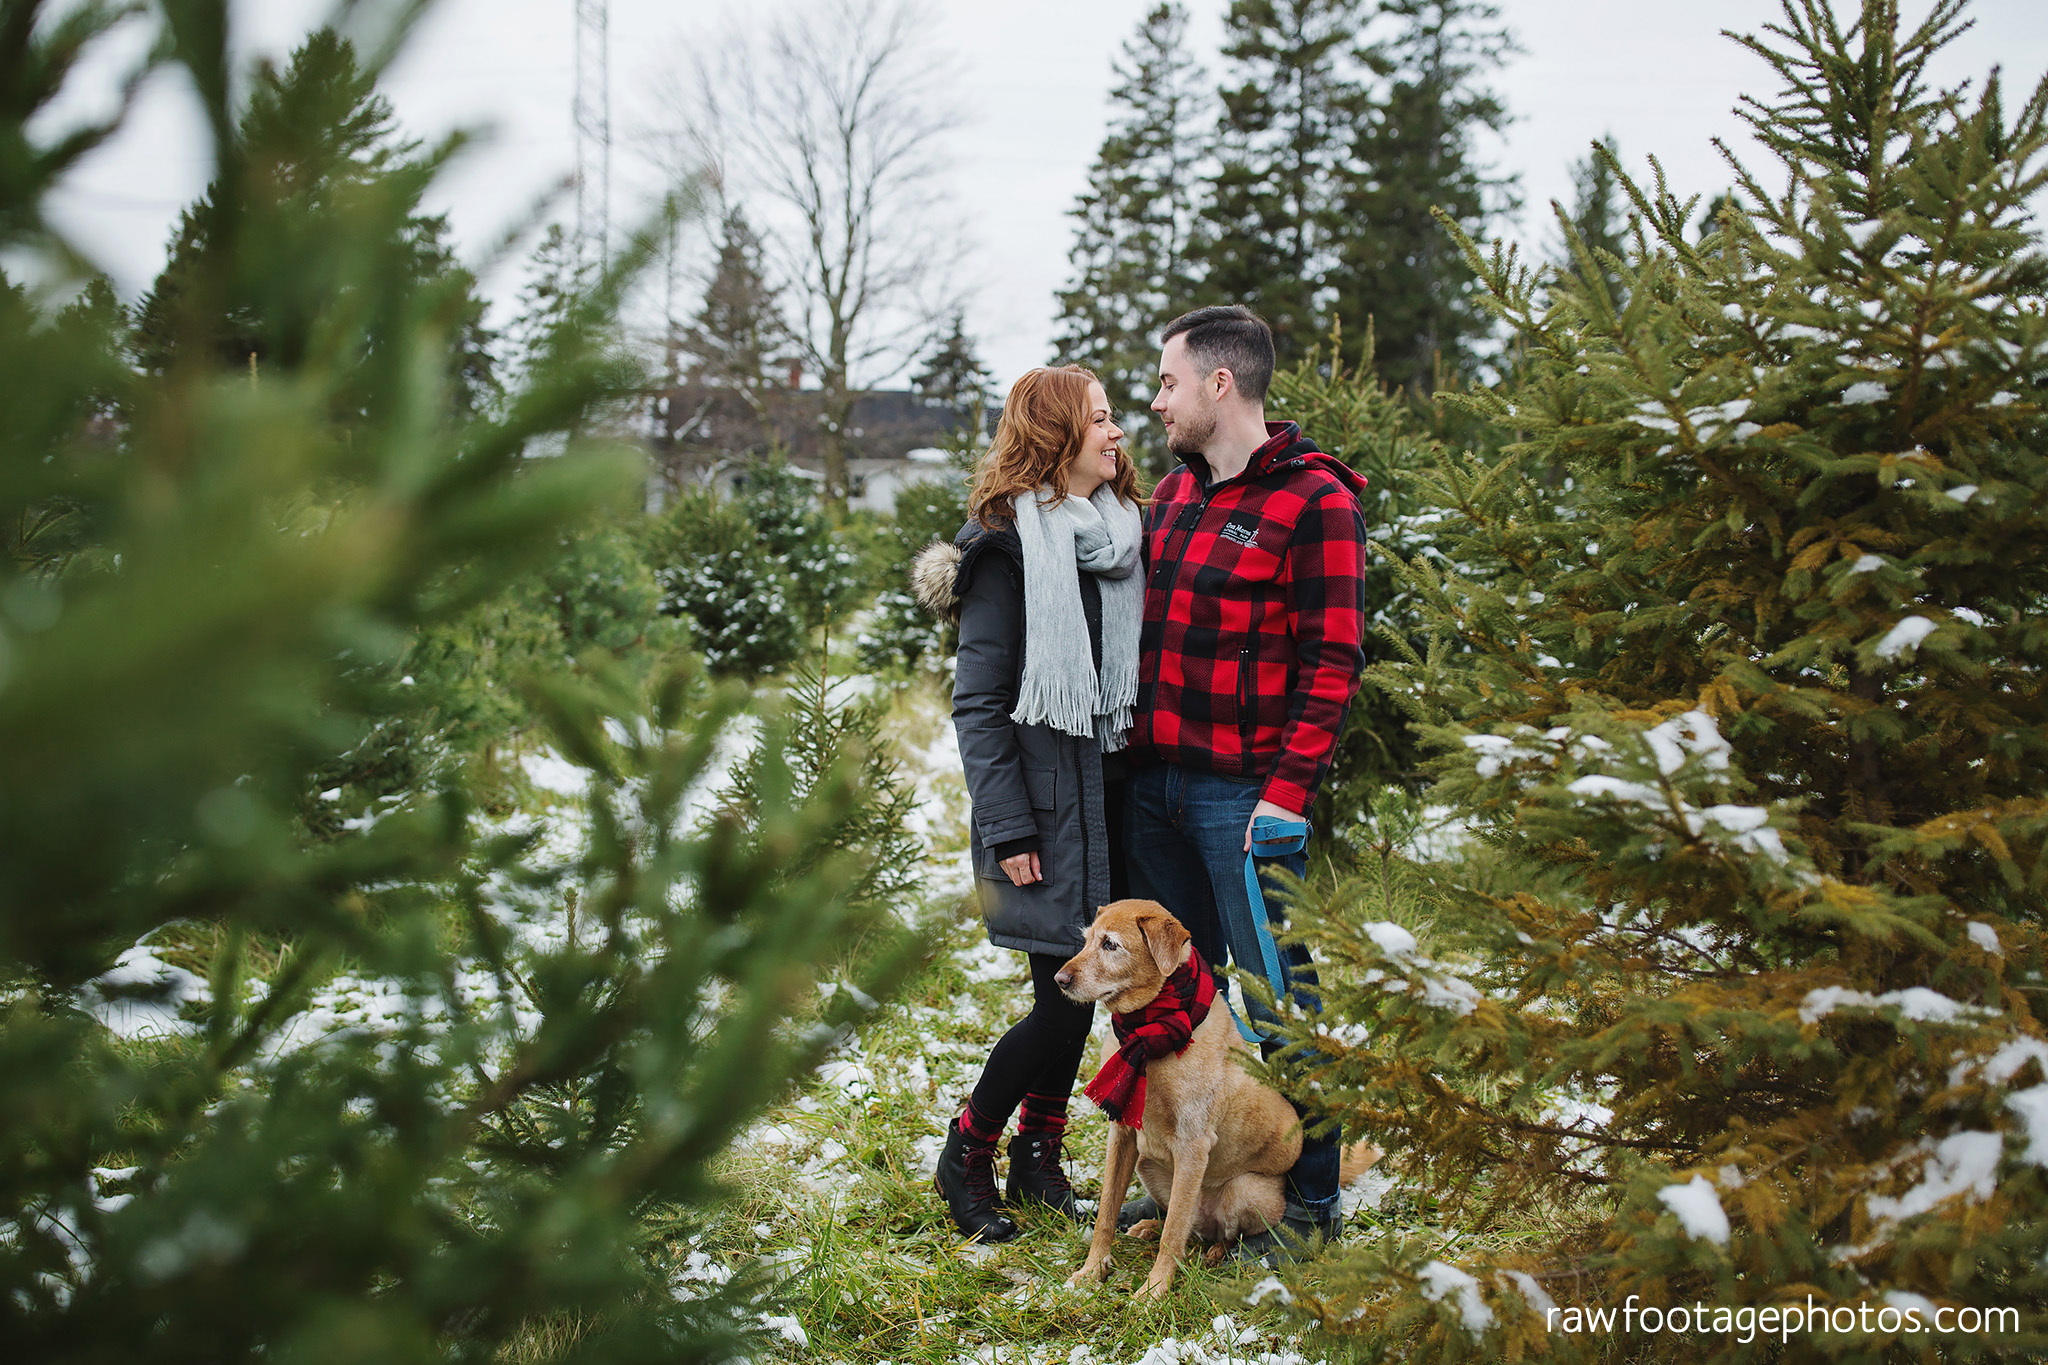 london_ontario_family_photography-lifestyle_photography-maternity_photos-raw_footage_photography-best_of_2018116.jpg